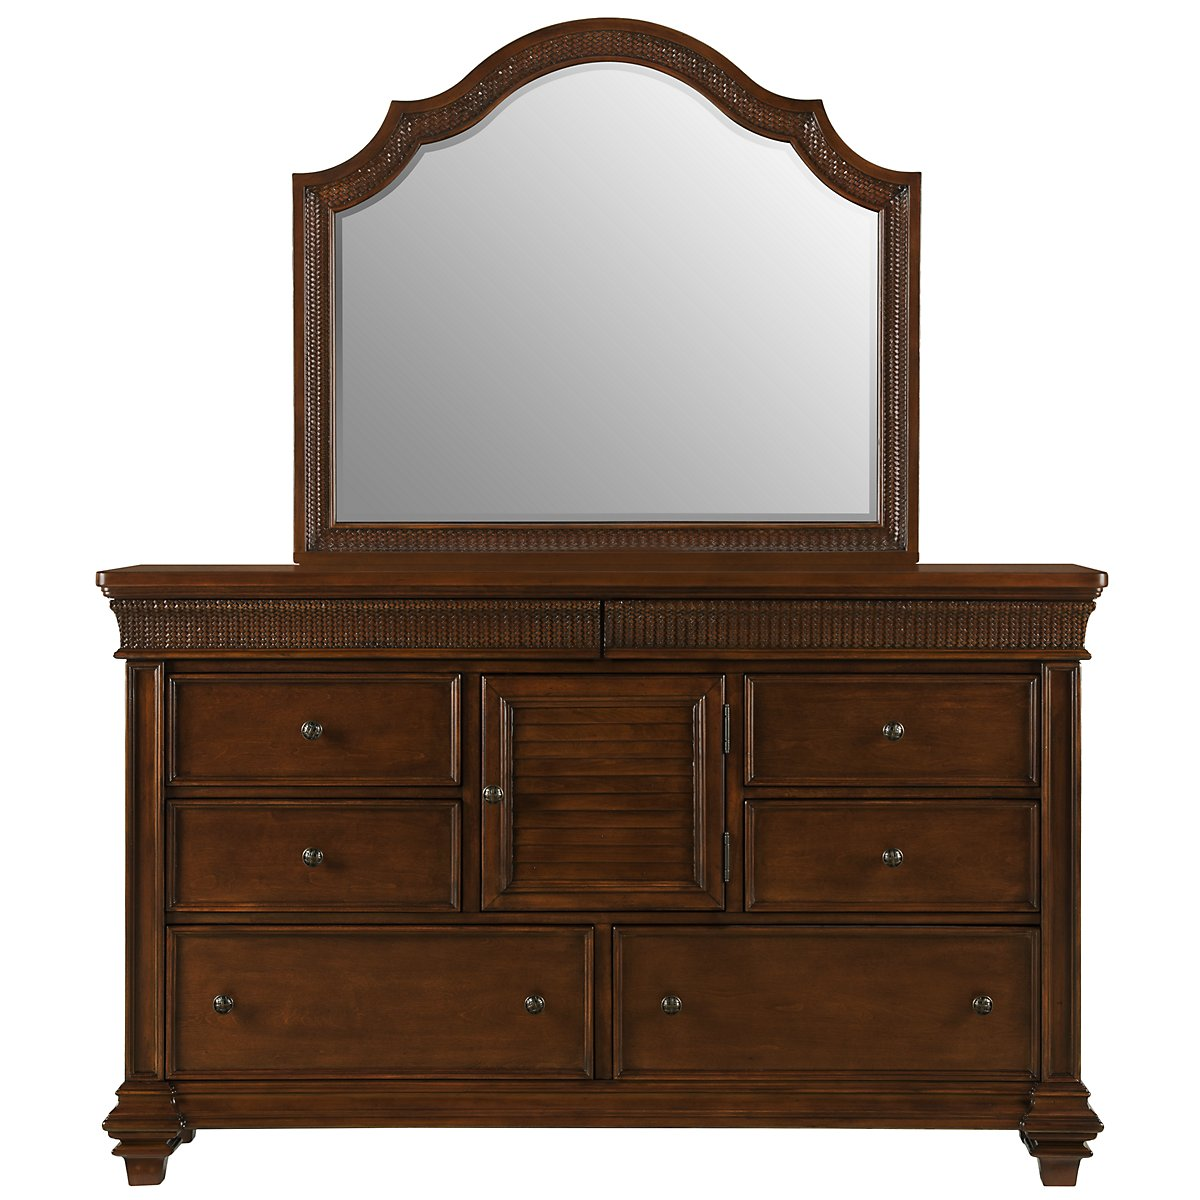 city furniture antigua mid tone dresser mirror. Black Bedroom Furniture Sets. Home Design Ideas